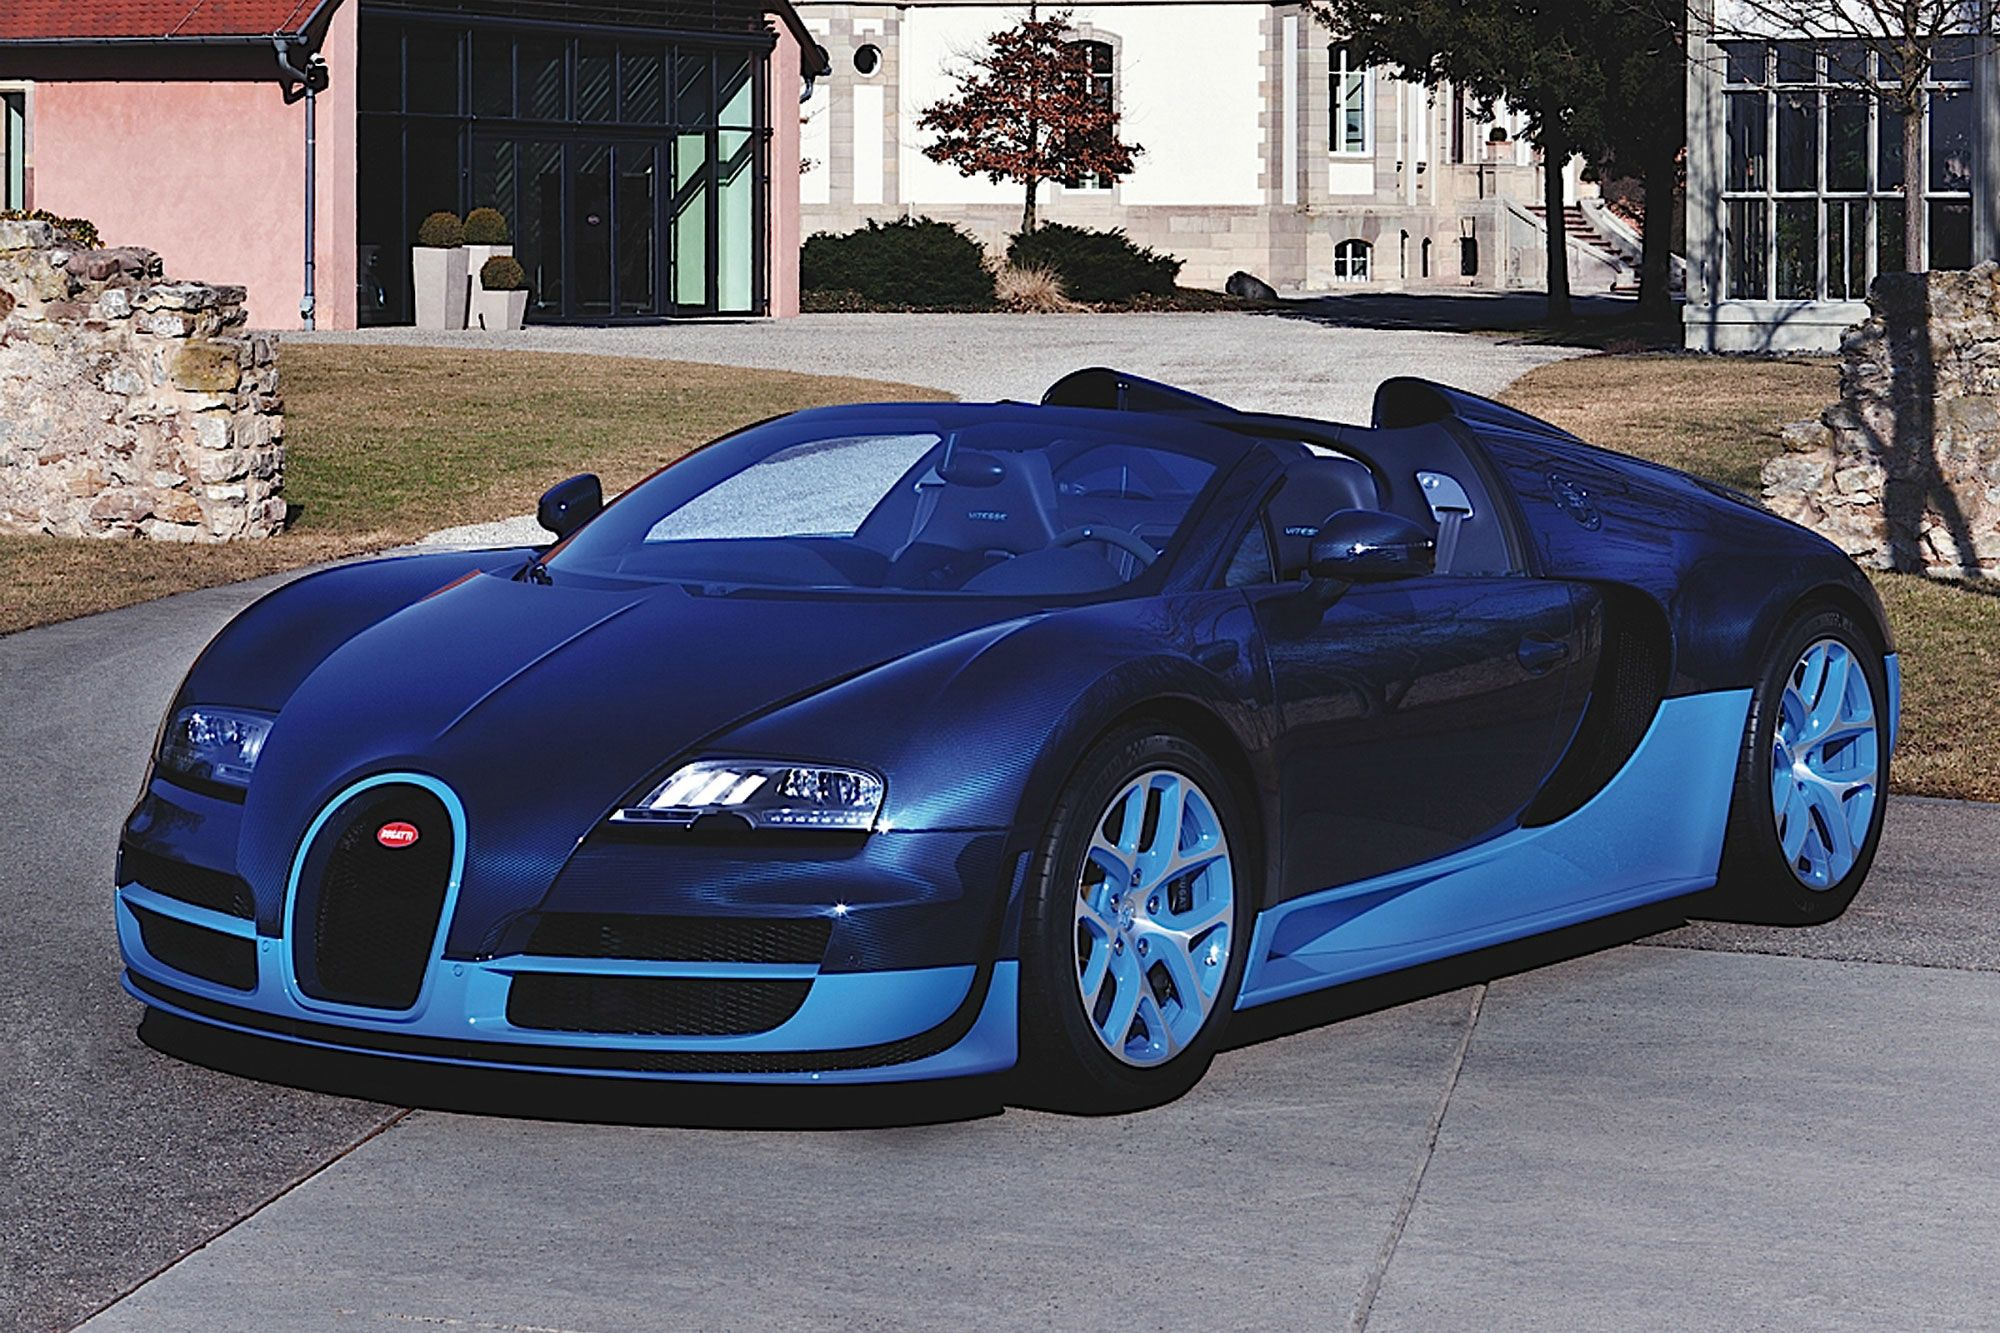 blue bugatti pictures 2012 bugatti veyron grand sport blue bugatti veyron c. Black Bedroom Furniture Sets. Home Design Ideas